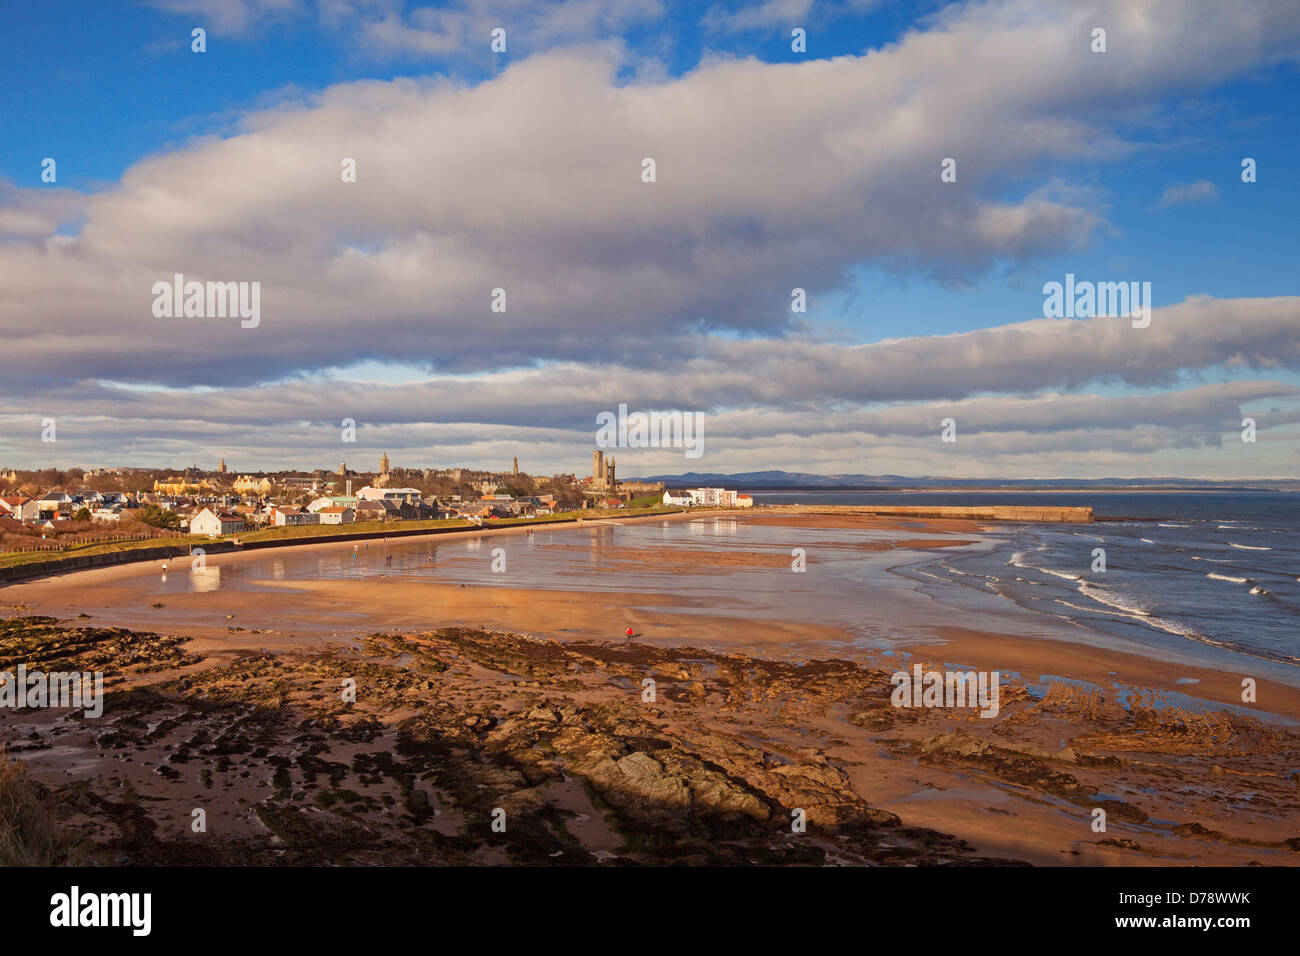 East Sands, St Andrews, showing the harbour buildings and cathedral. - Stock Image